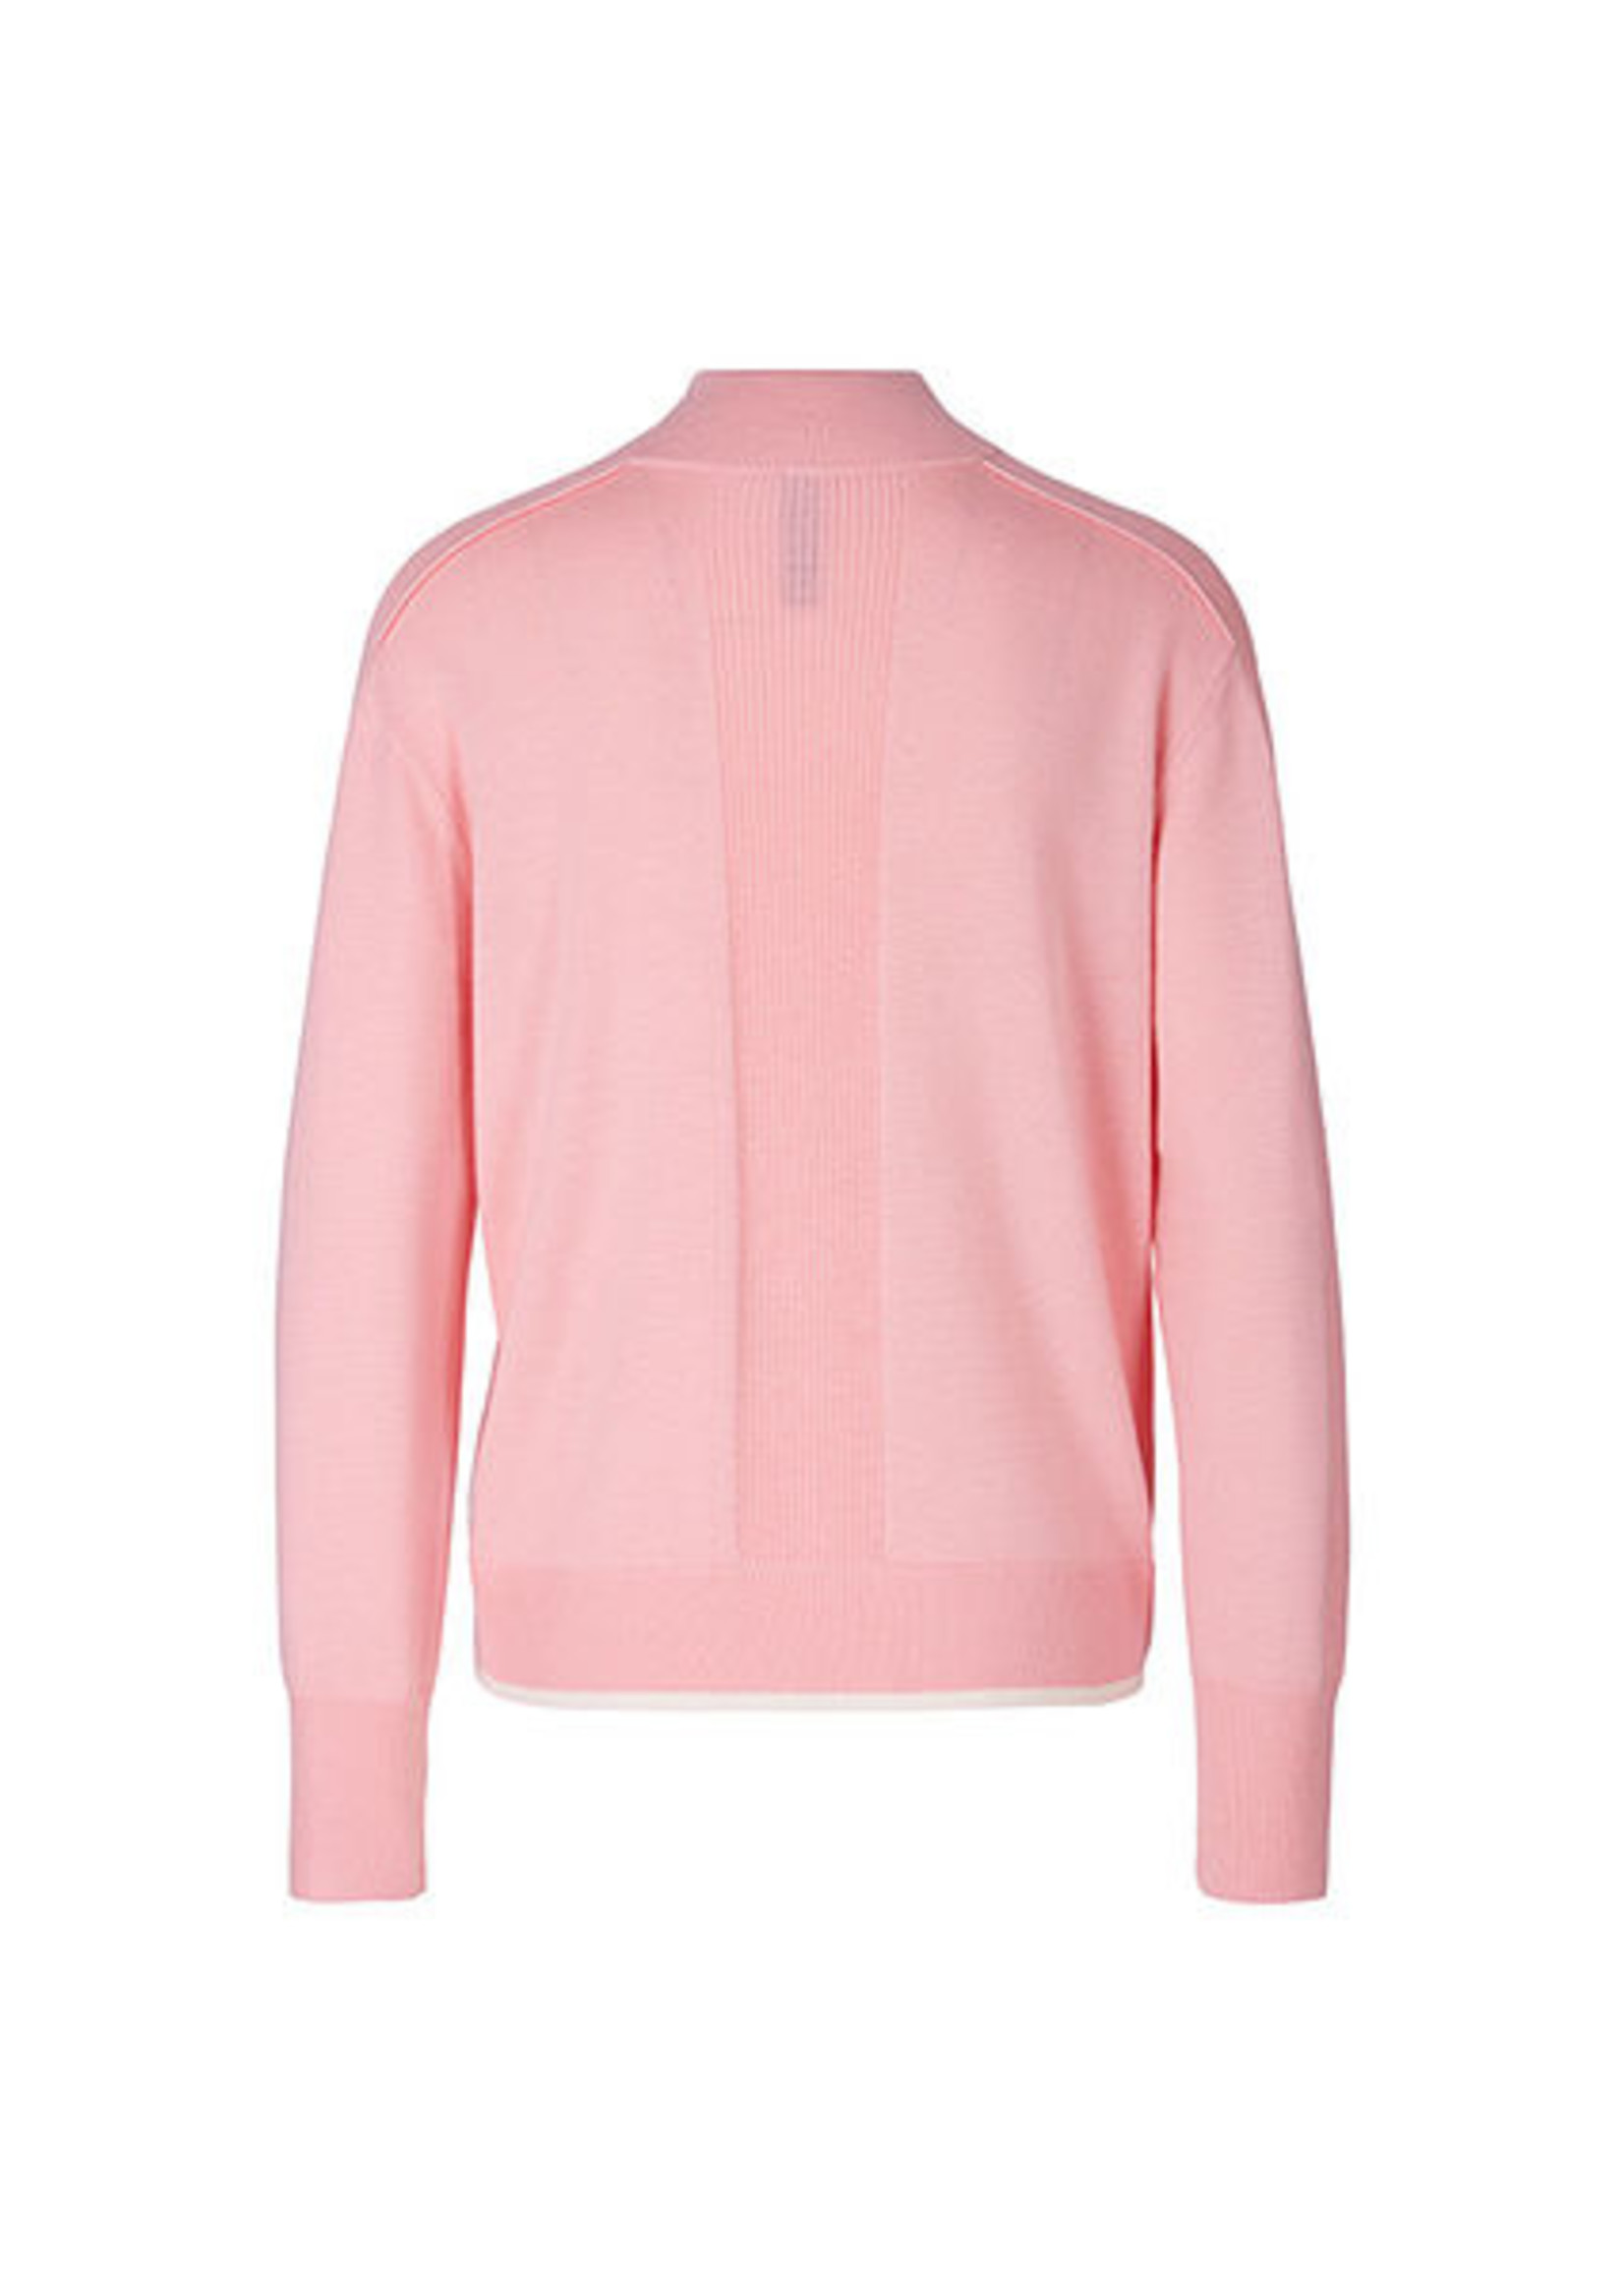 Marccain Sports Jack RS 31.05 M80 coralblush